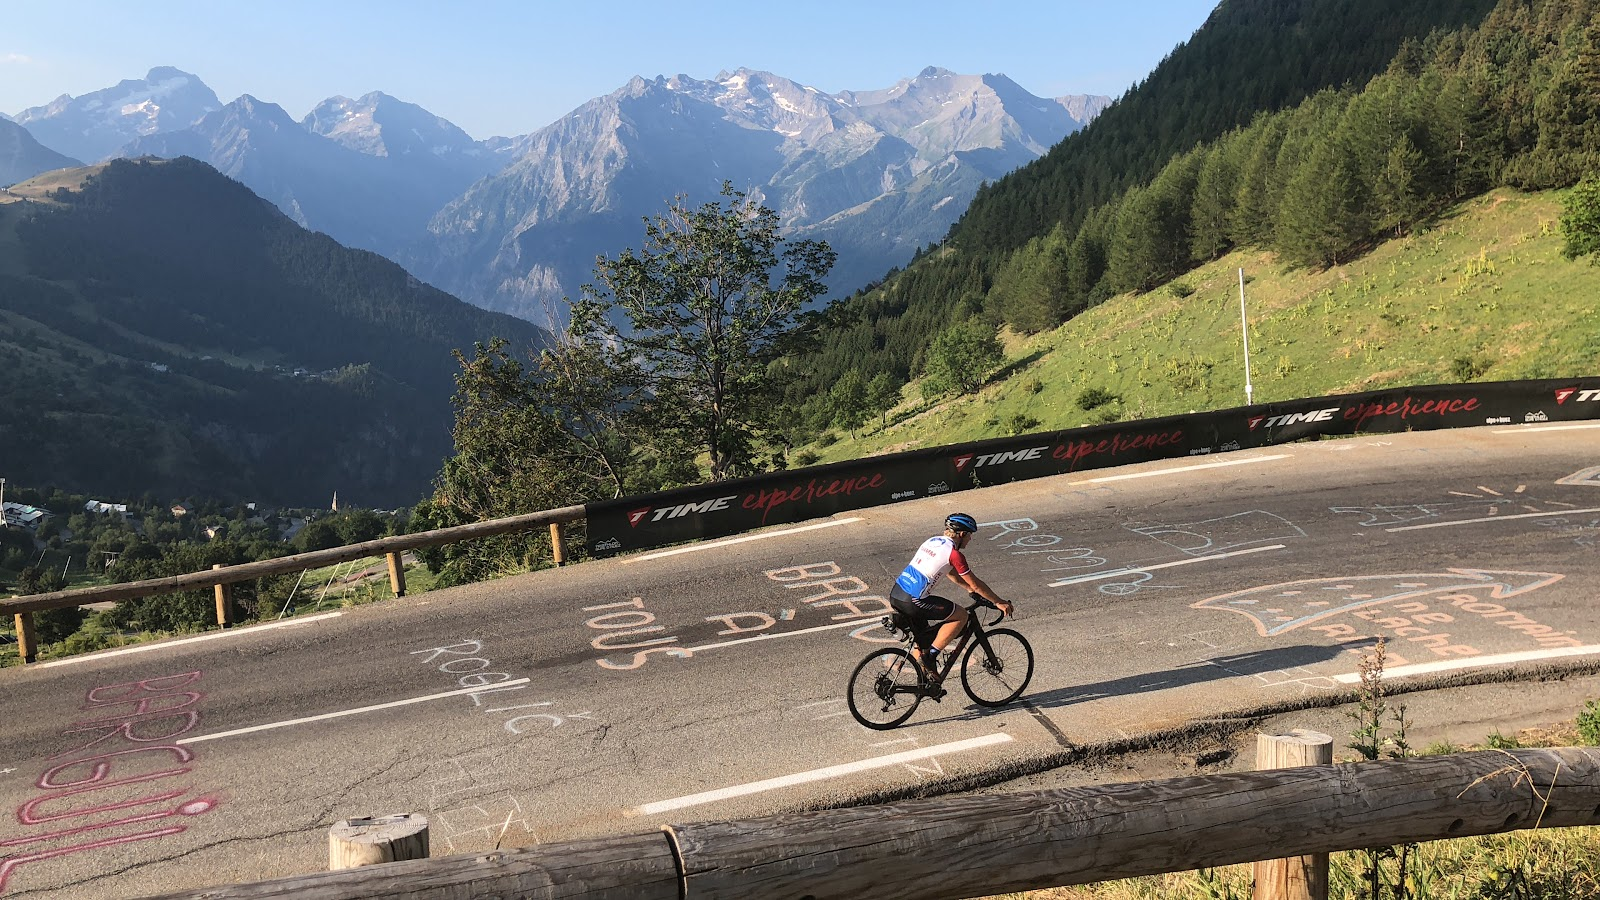 Cycling Alpe d'Huez - cyclist riding bike over road with tour de france road paint, mountains in background